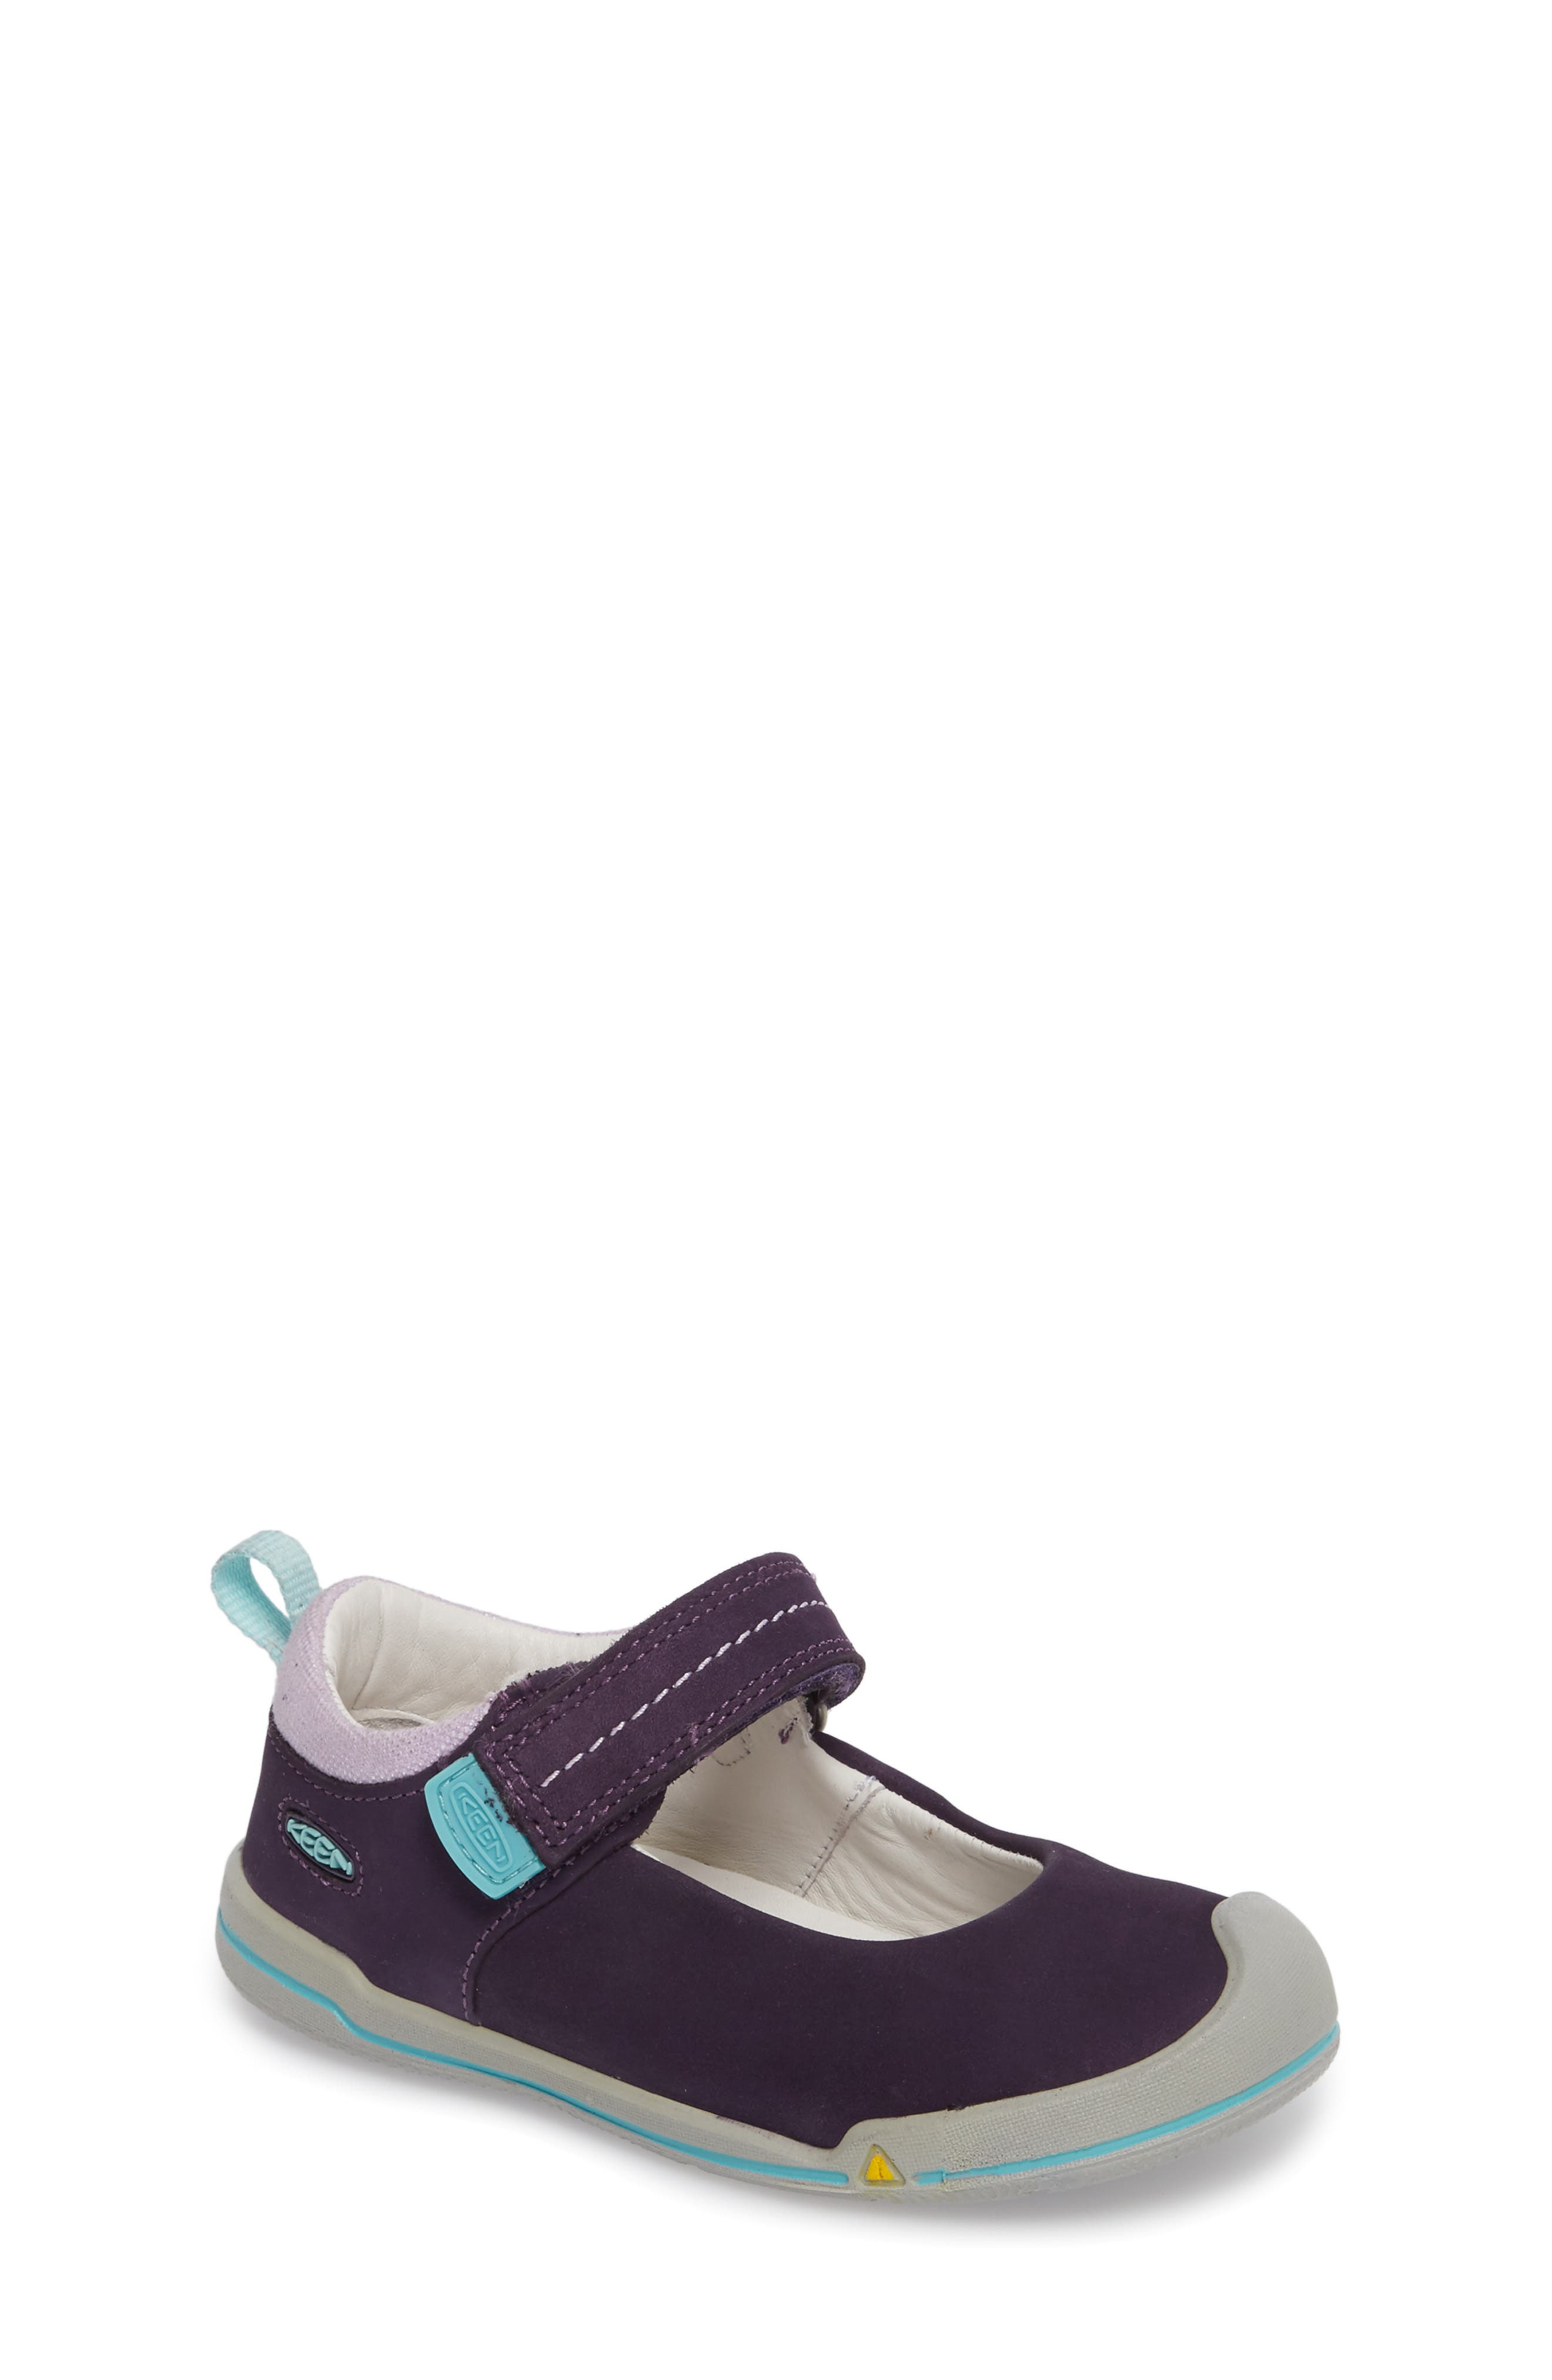 Sprout Mary Jane Sneaker,                             Main thumbnail 2, color,